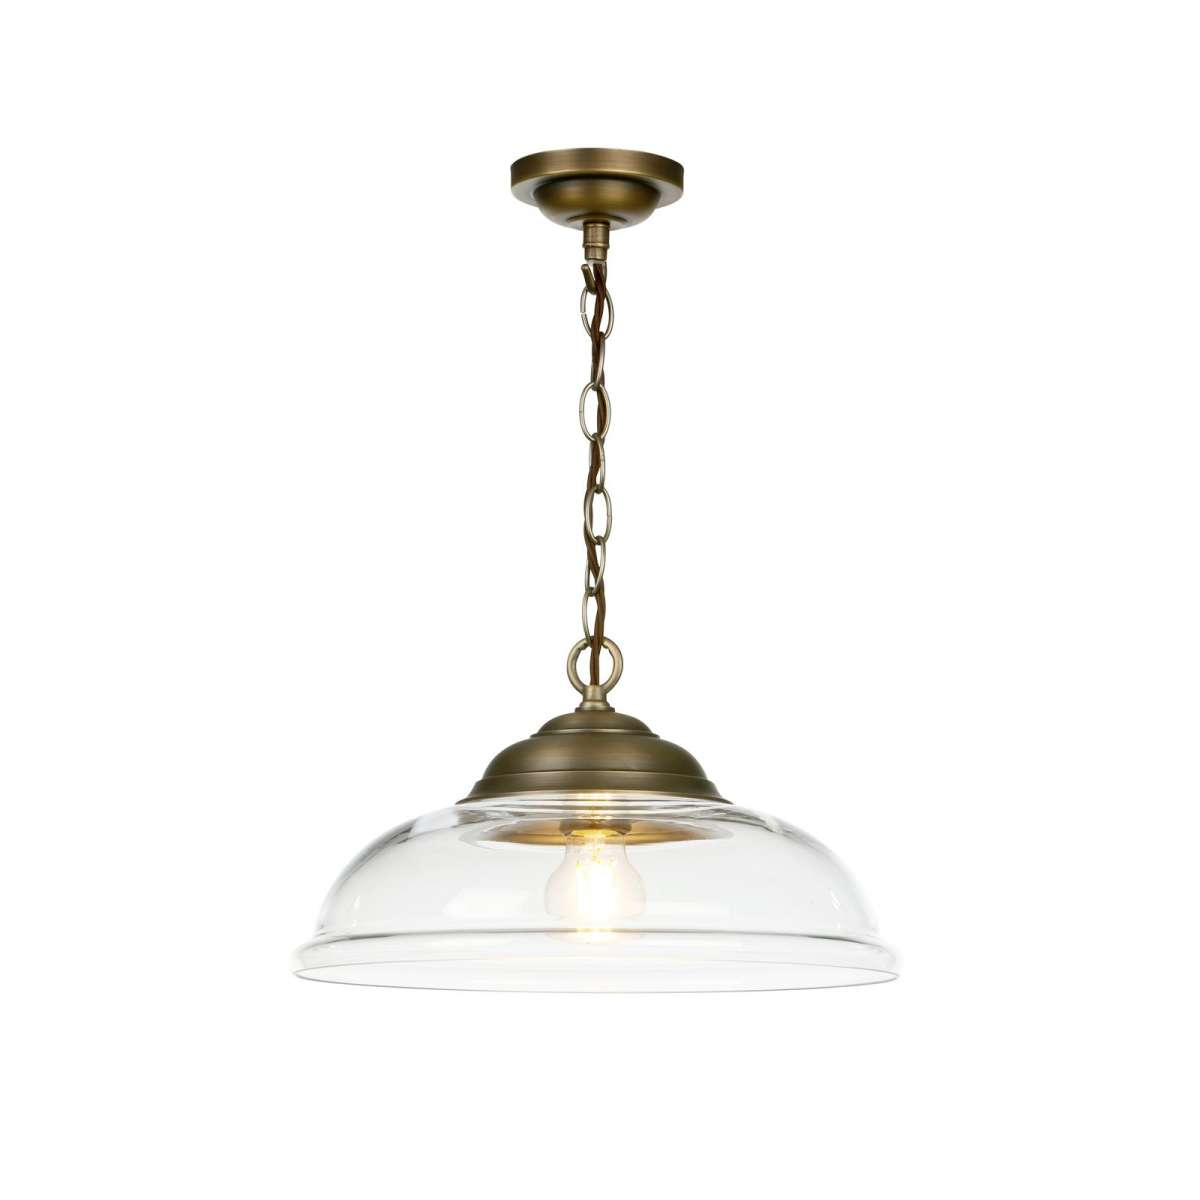 WEBSTER 1 light pendant clear glass with antique brass